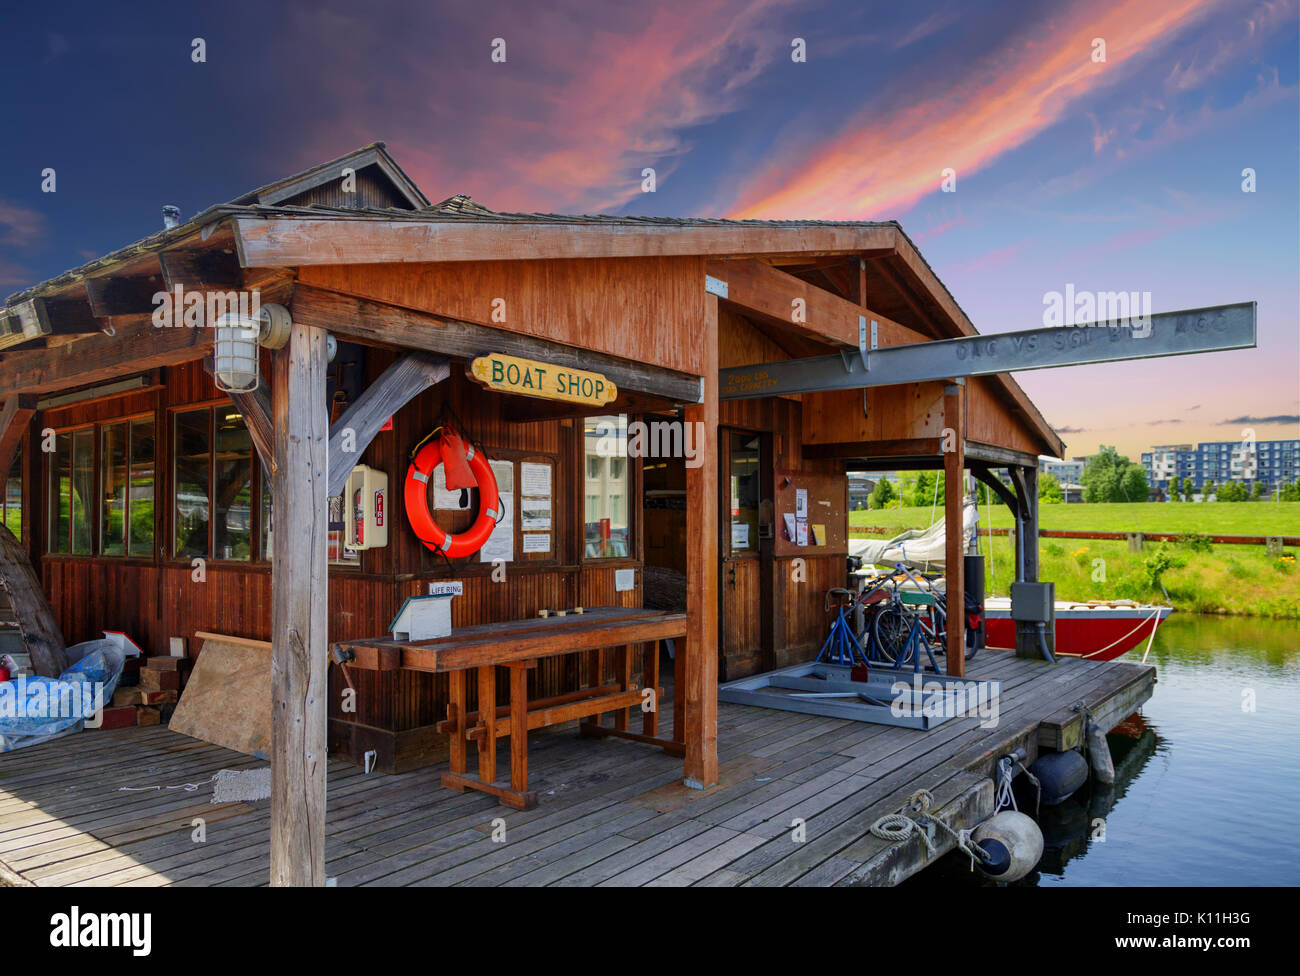 Seattle Boat House at Sunset - Stock Image